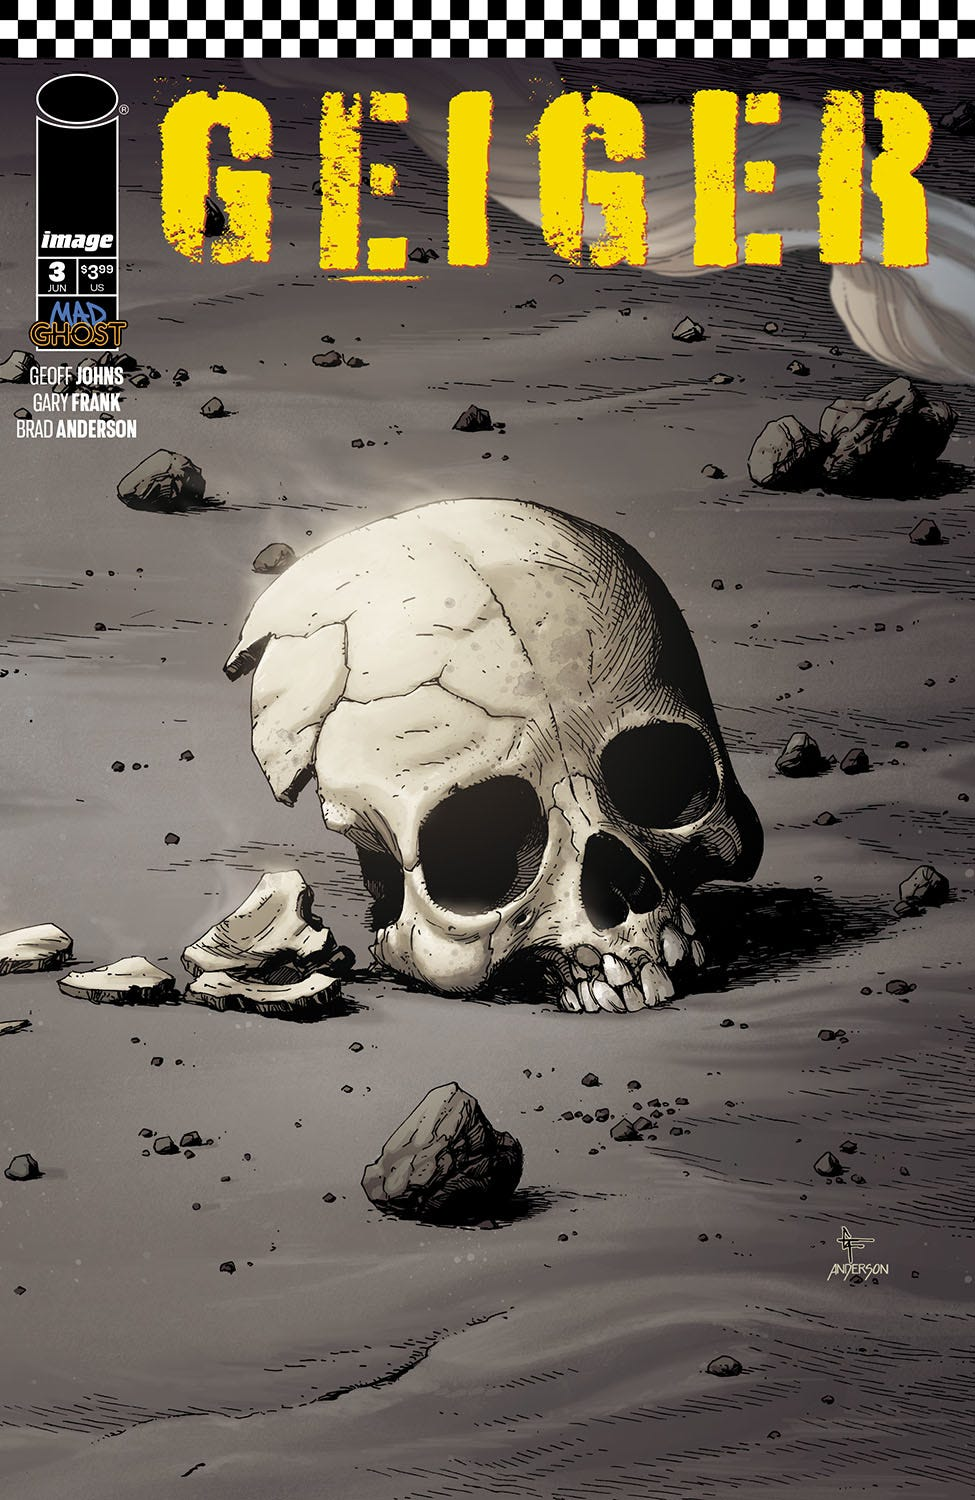 Geiger #3 (Cover A - Frank & Anderson)